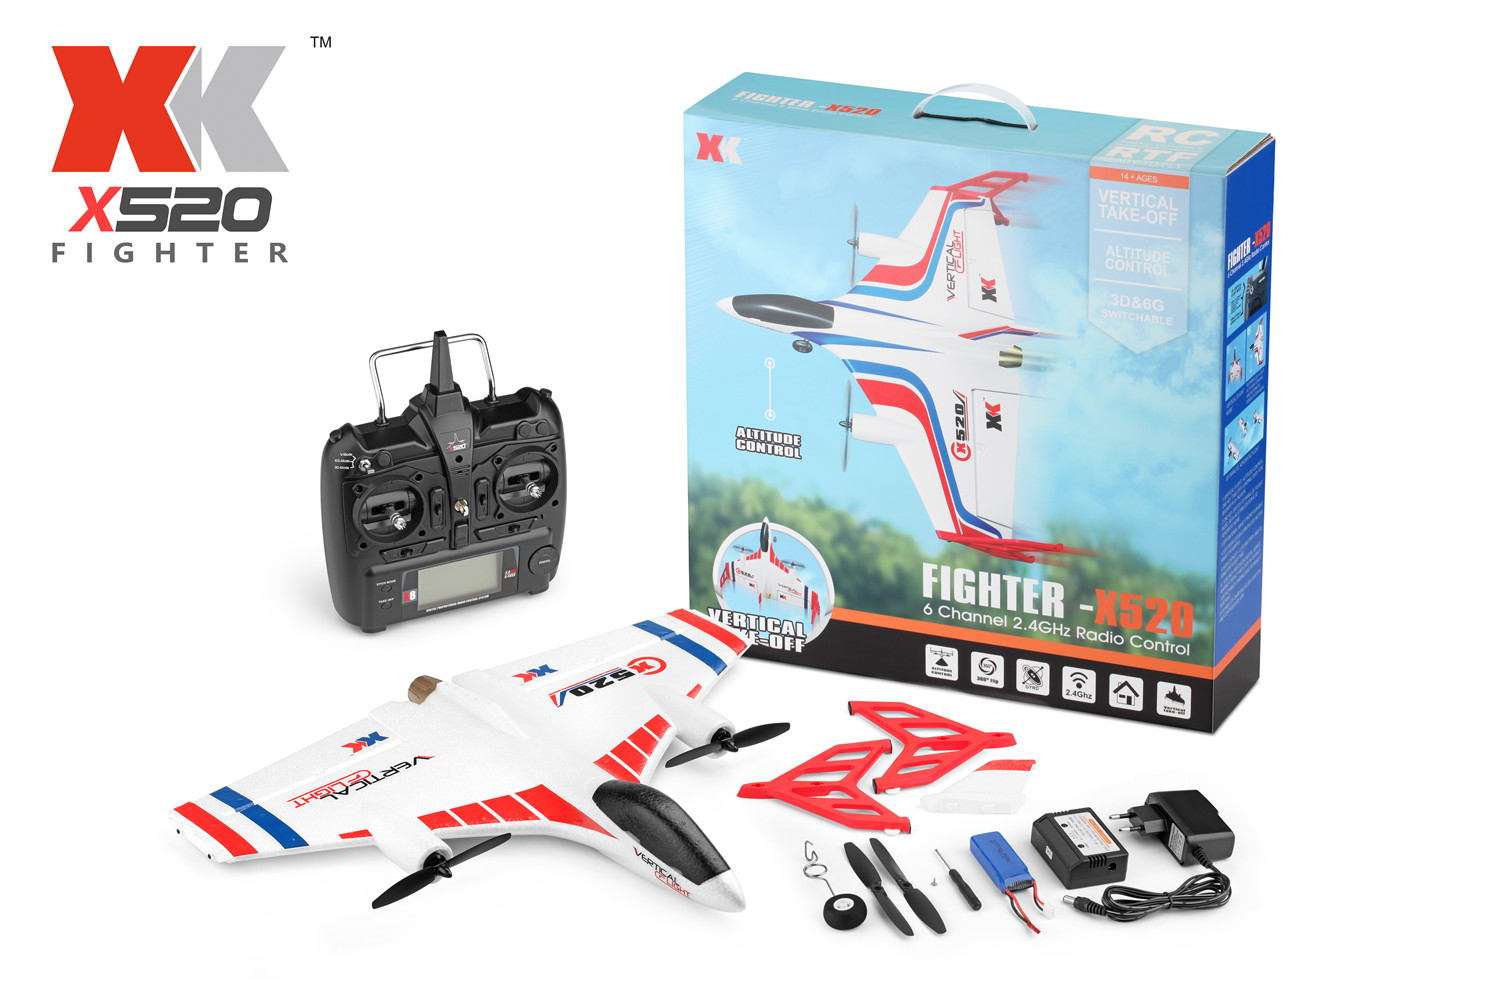 XK X520 RC AirPlane Drone (XK X520 vertically flight brushless 6 channel rc plane),with X8 big Version Transmitter